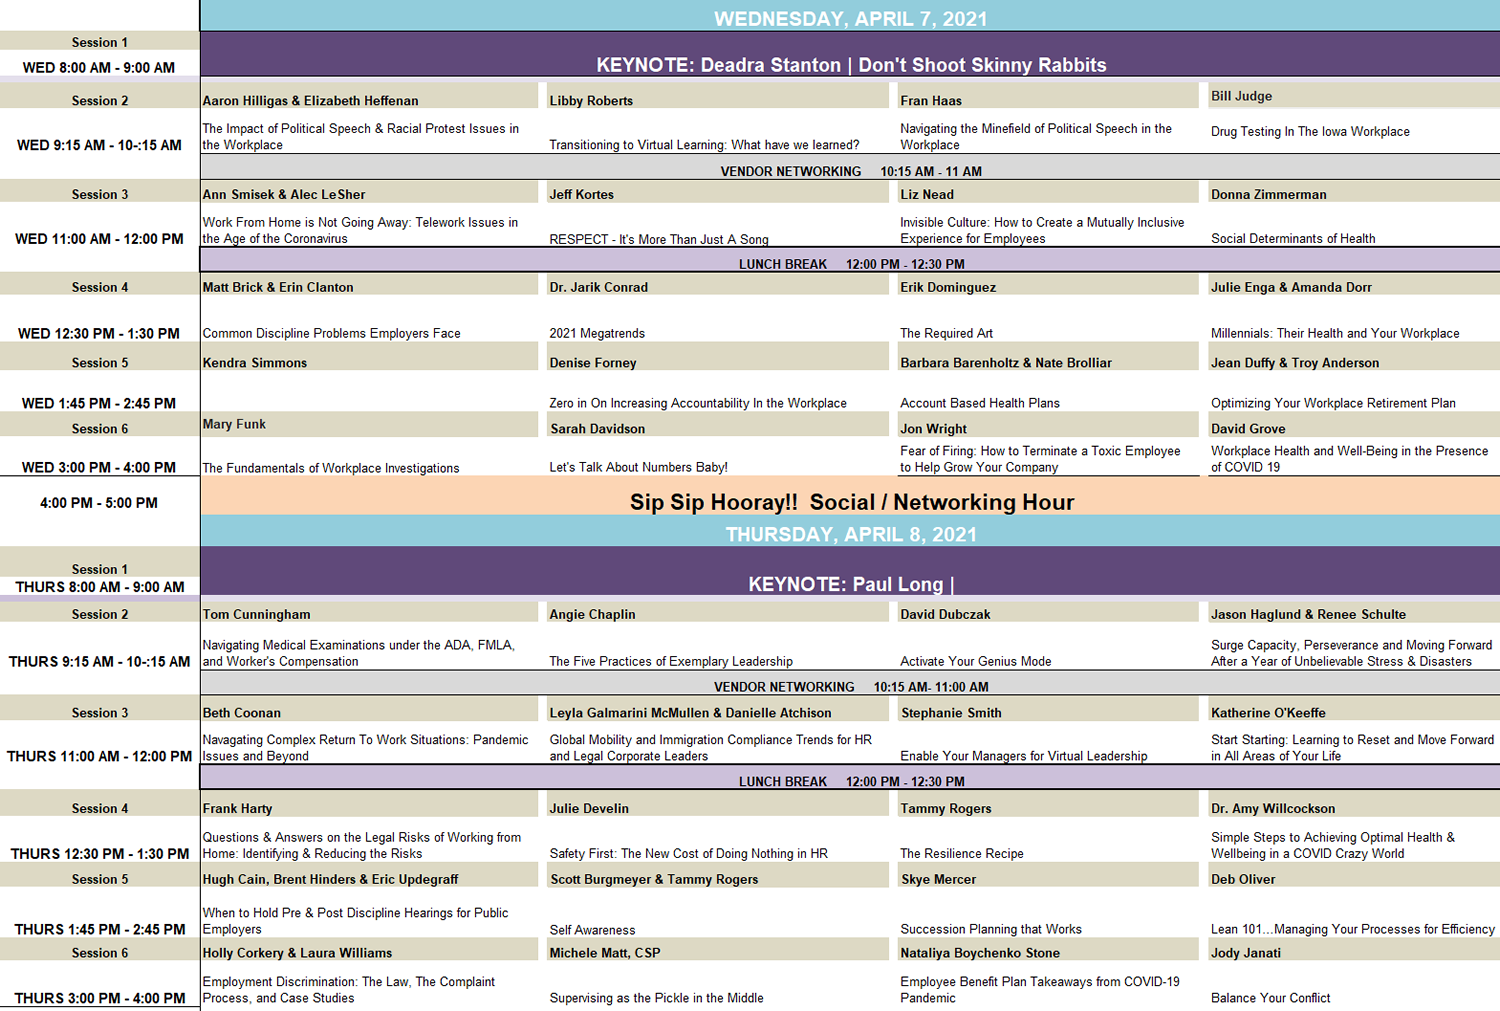 IEC Spring 2021 Schedule at a Glance